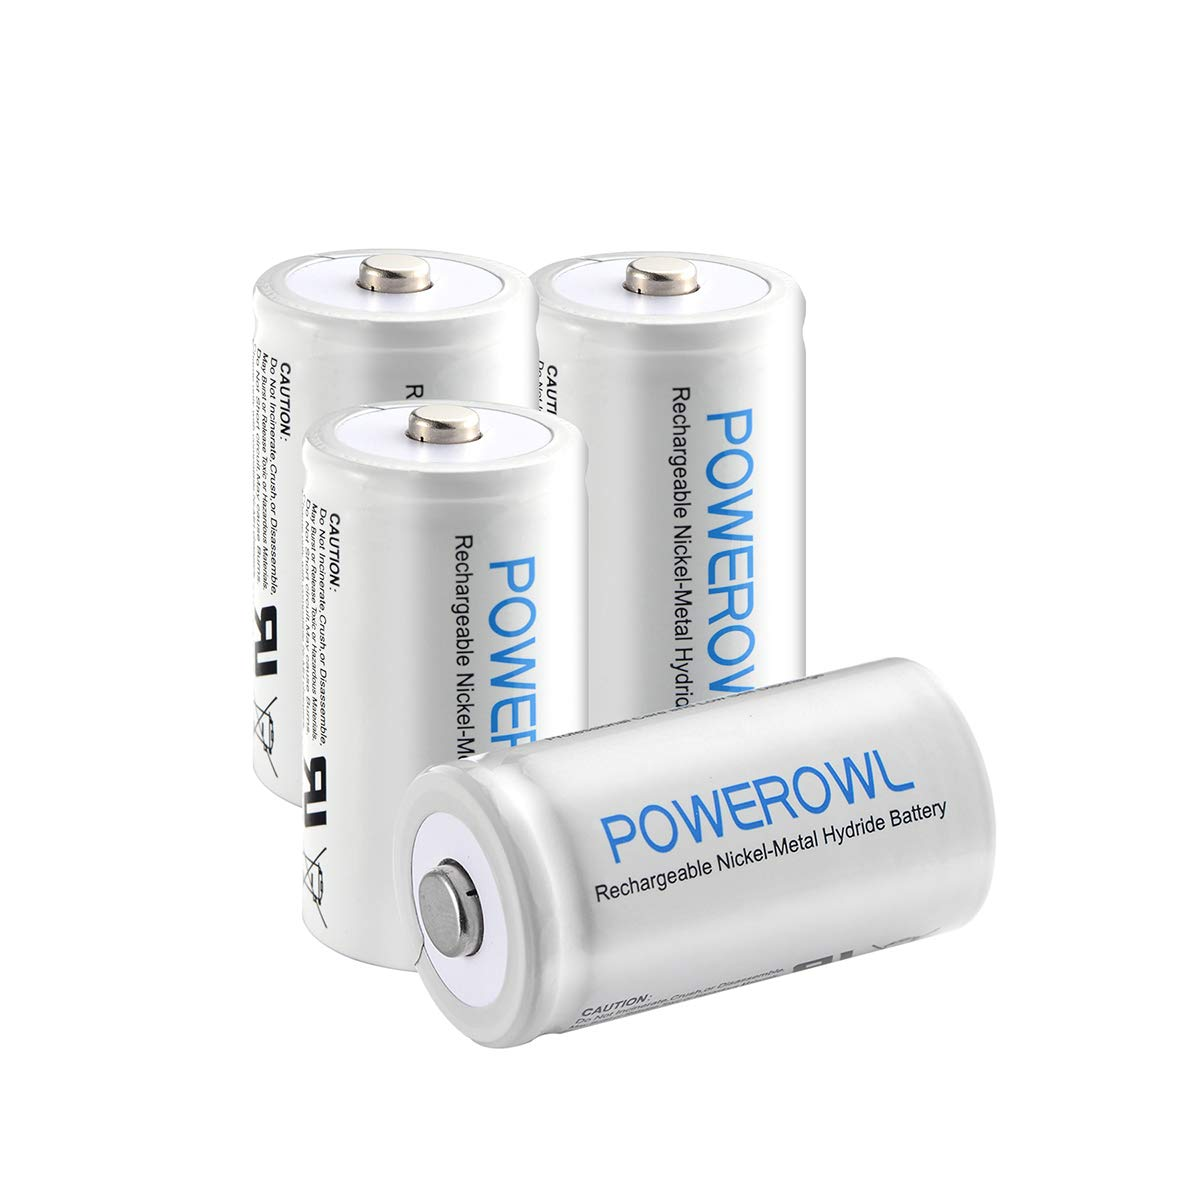 POWEROWL Rechargeable C Batteries Ni-mh C Size Nickle Metal Hydride 5000mah 1.2v Low Self Discharge C Batteries 4 Pack by POWEROWL